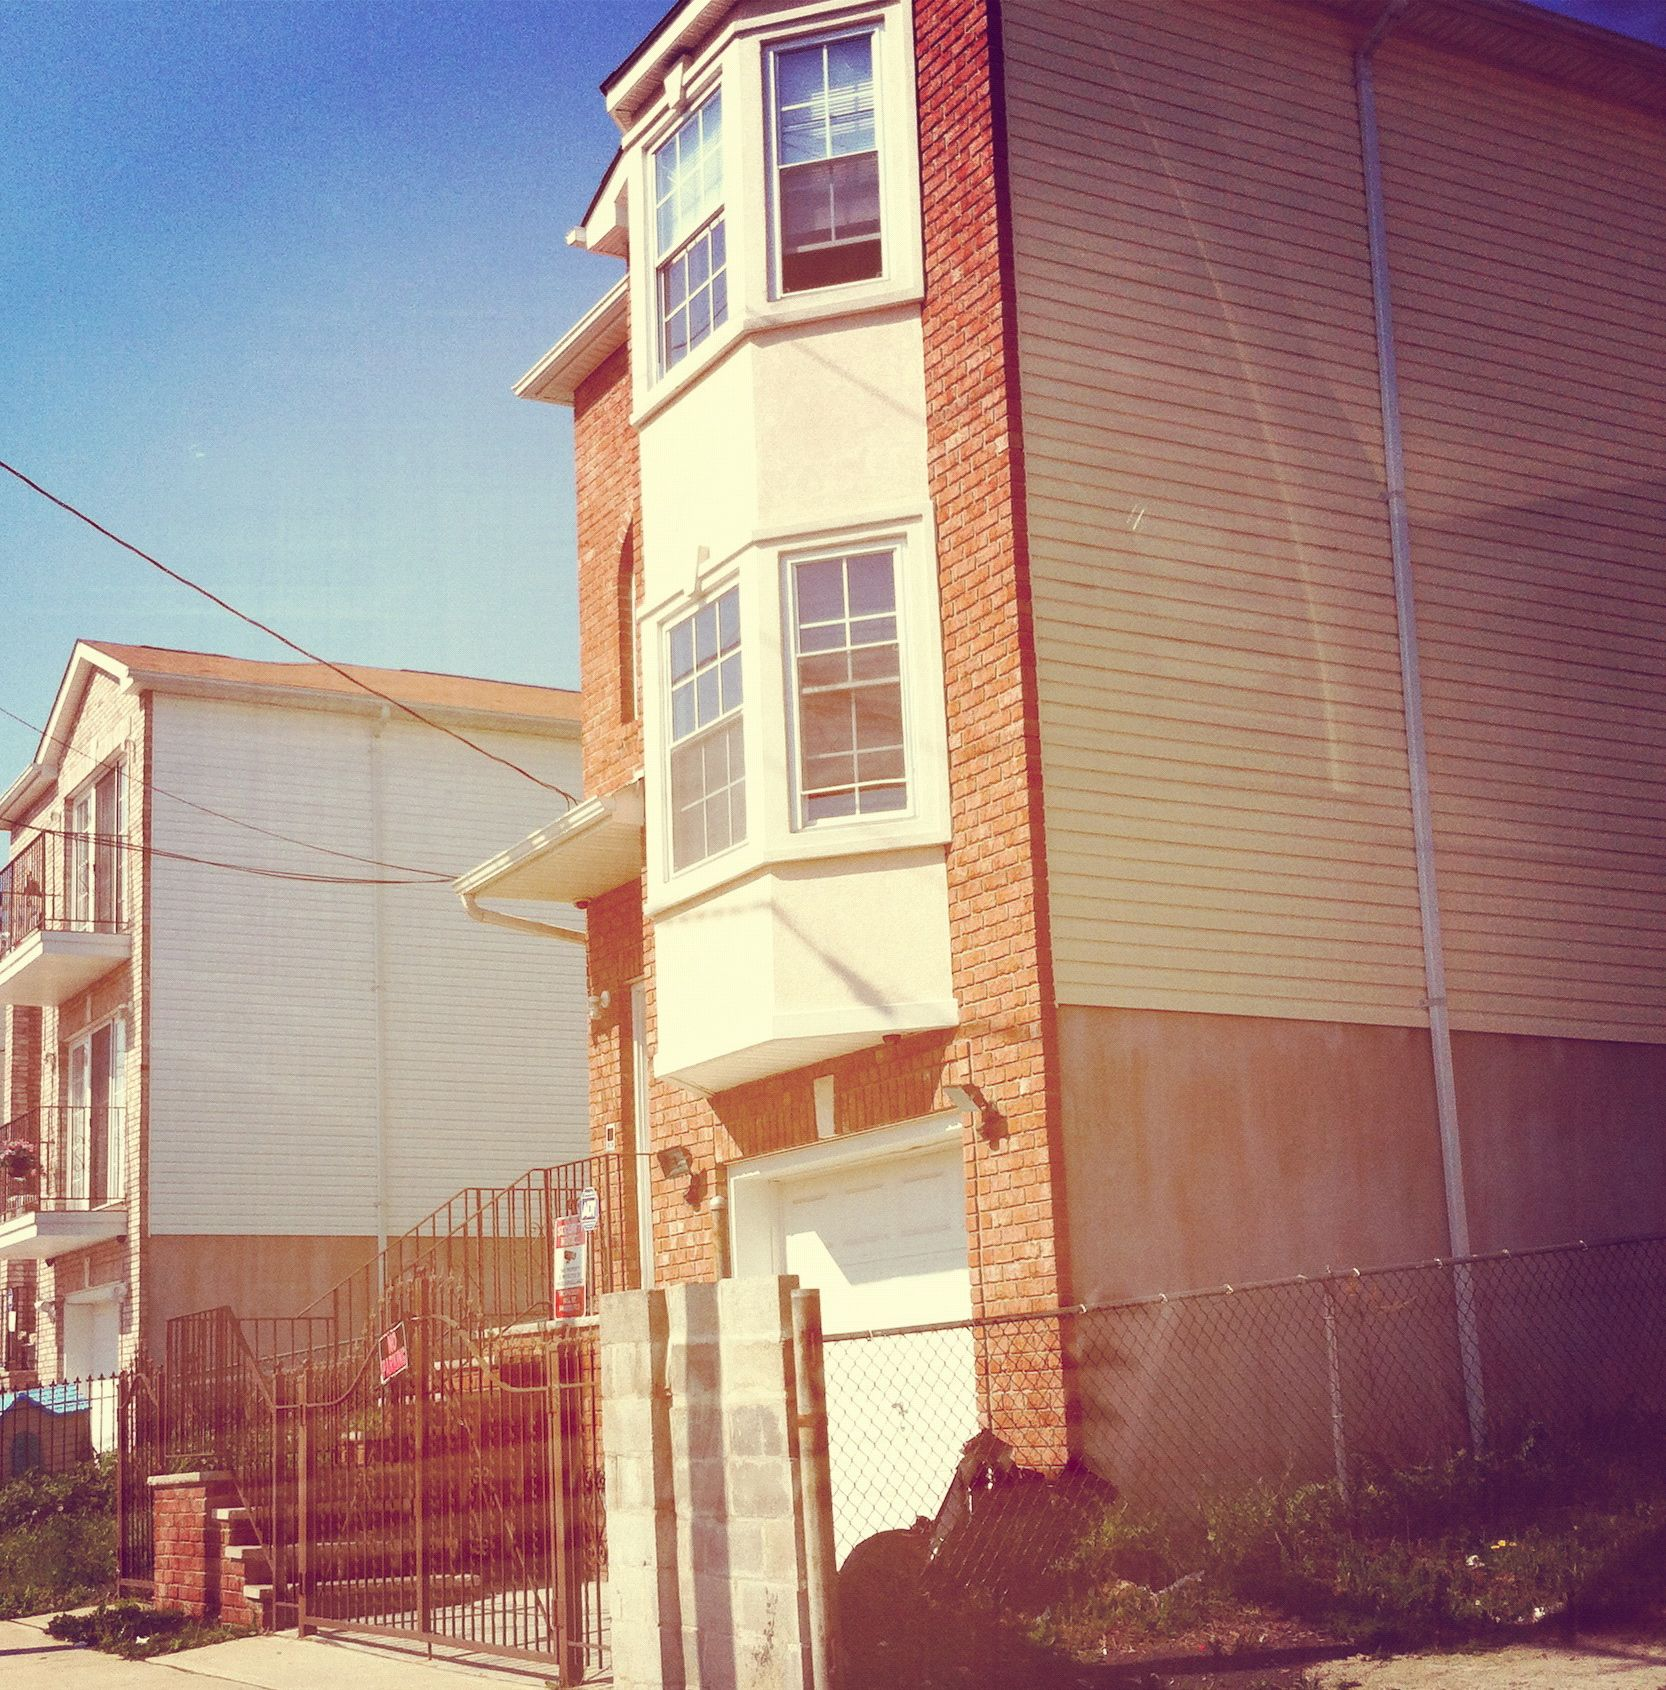 Buyer needed for the abandoned house and large lot to the right of this beautiful home in Newark, NJ. Grab this opportunity for a steal and help us keep the peace.